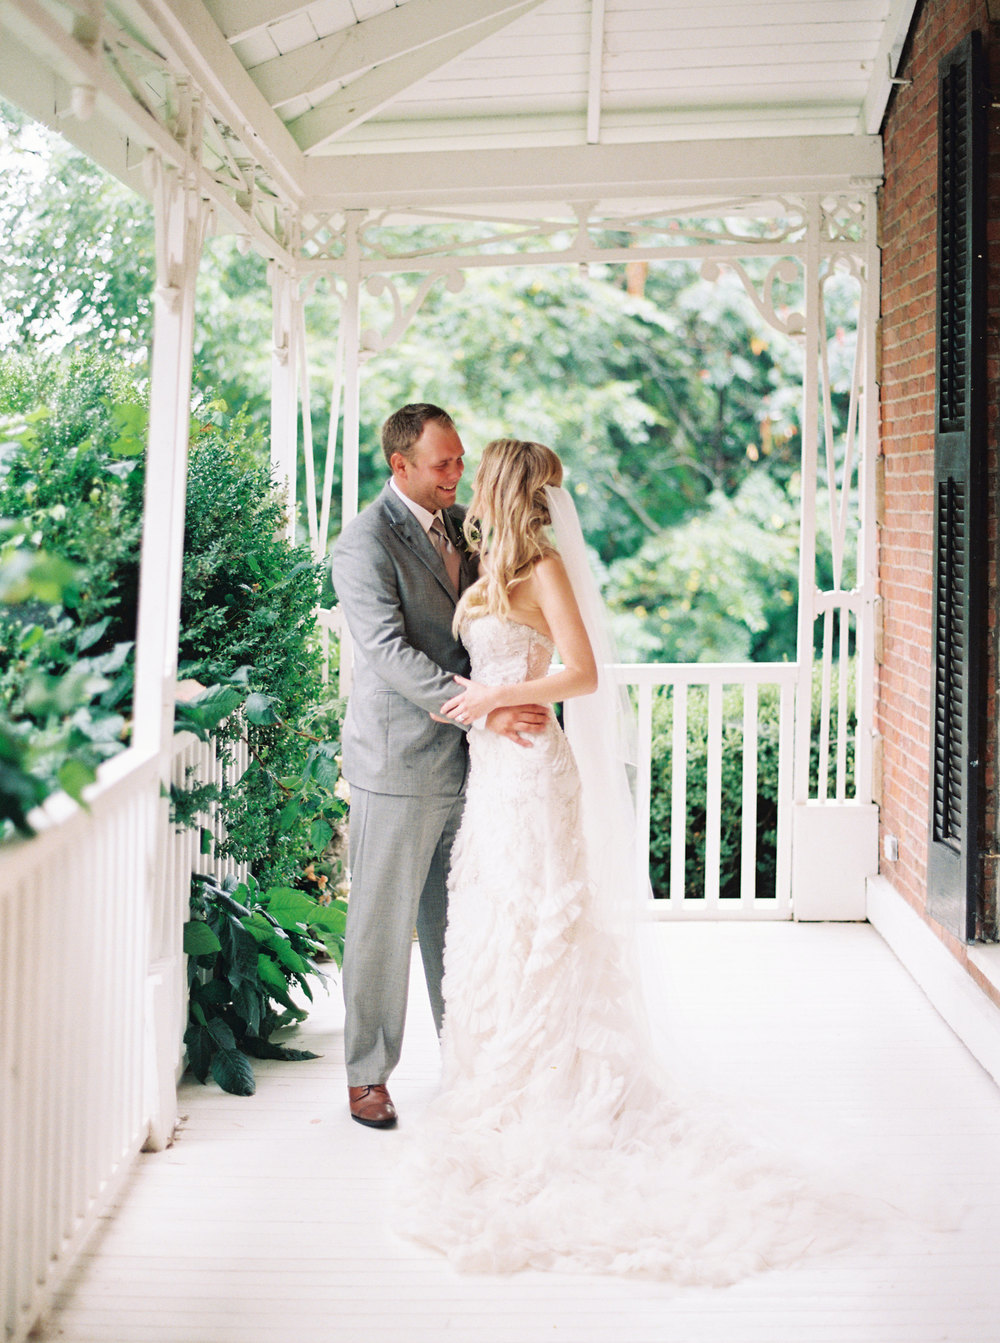 Kurtz-Orchards-Niagara-on-the-Lake-Wedding-photography-by-When-He-Found-Her-067.JPG